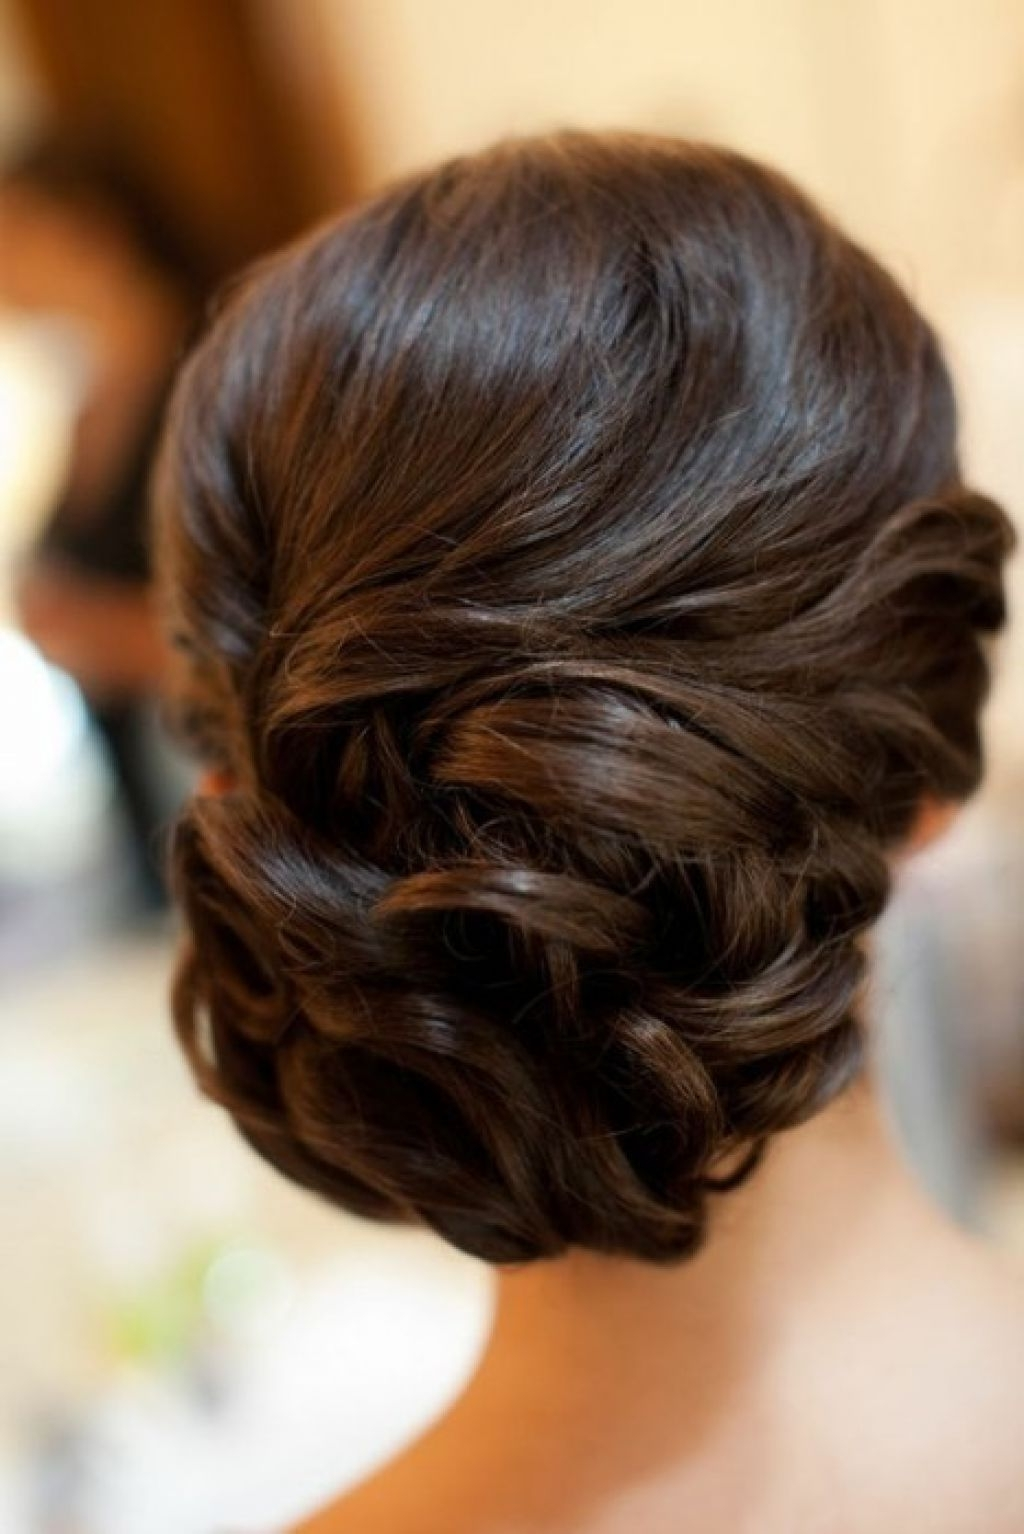 Buns Hairstyles Bridal Updo Bun Hairstyle For Medium Long Hair Intended For 2017 Wedding Hairstyles For Long Bun Hair (View 5 of 15)